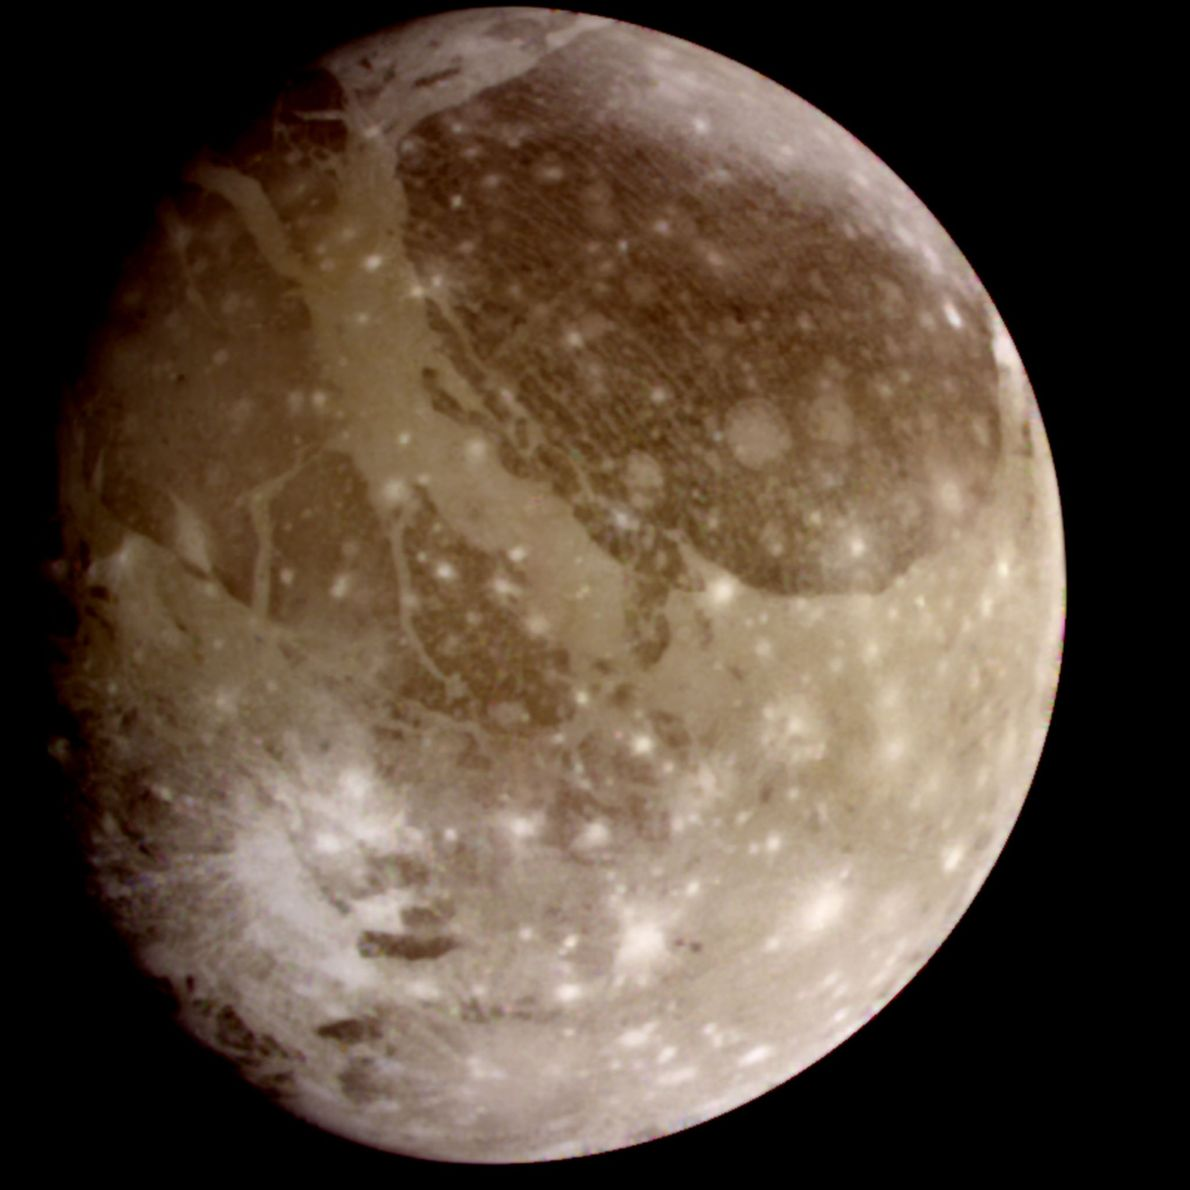 The Galileo spacecraft, which toured the Jupiter system from 1995 to 2003, captured this image of …